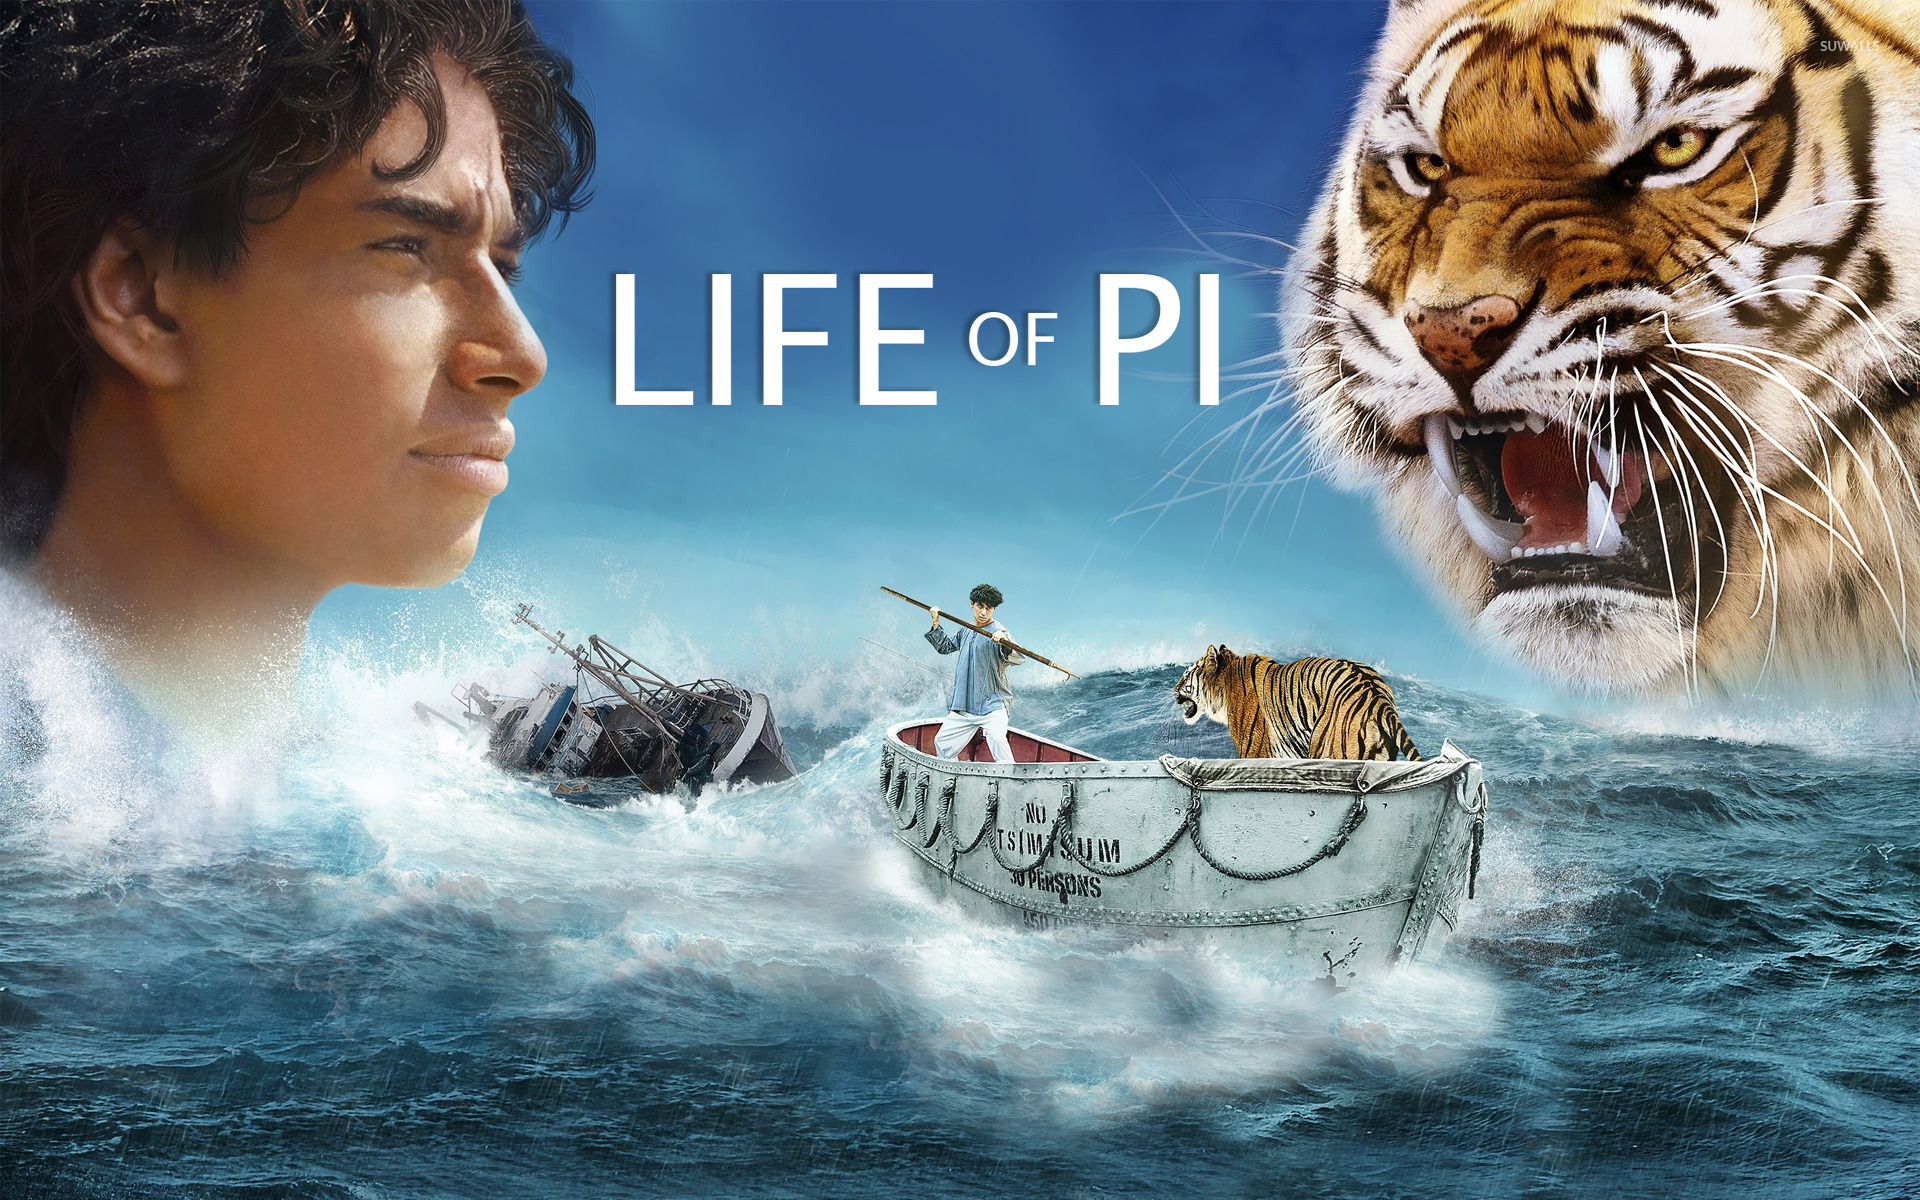 comparative life of pi 'life of pi' turned out to be one of those books that made it really big, both in the world of letters and in the world of images, despite a seemingly infinite trail of plagiarism accusations it has left.